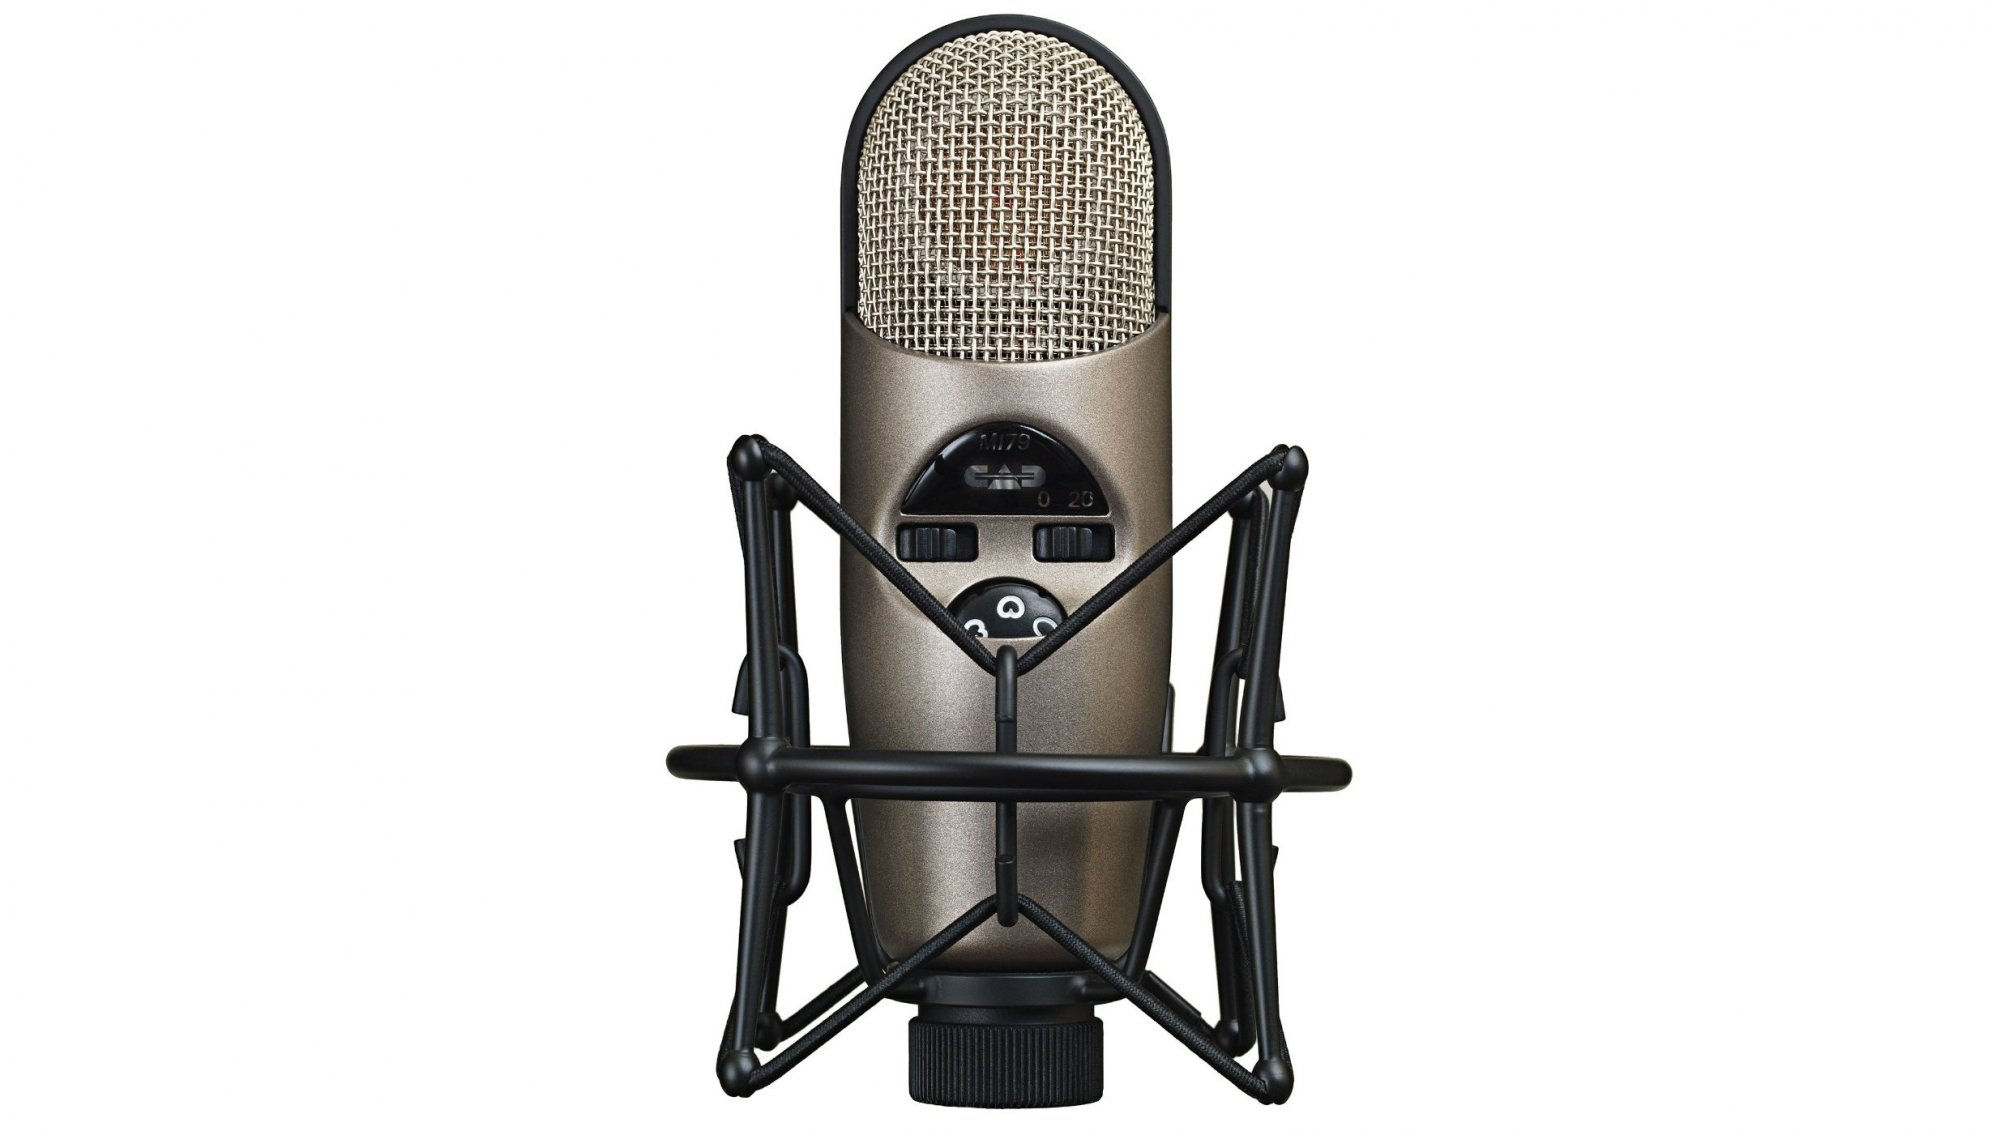 CAD M179 Microphone, Variable Pattern Condenser